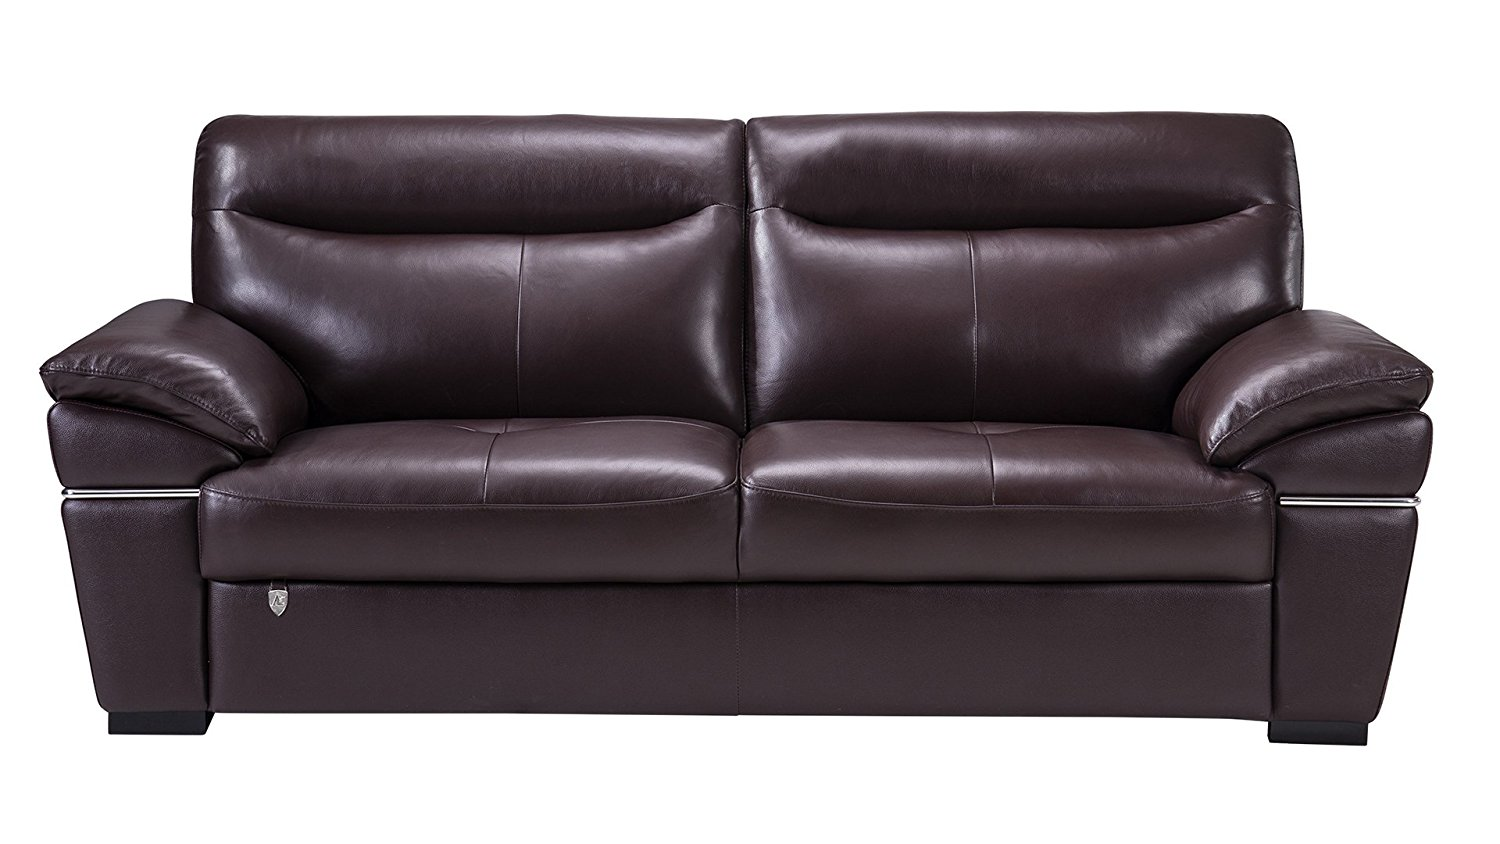 American Eagle Furniture Morris Collection Italian Leather Living Room Couch with Stainless Steel Trim, Dark Brown